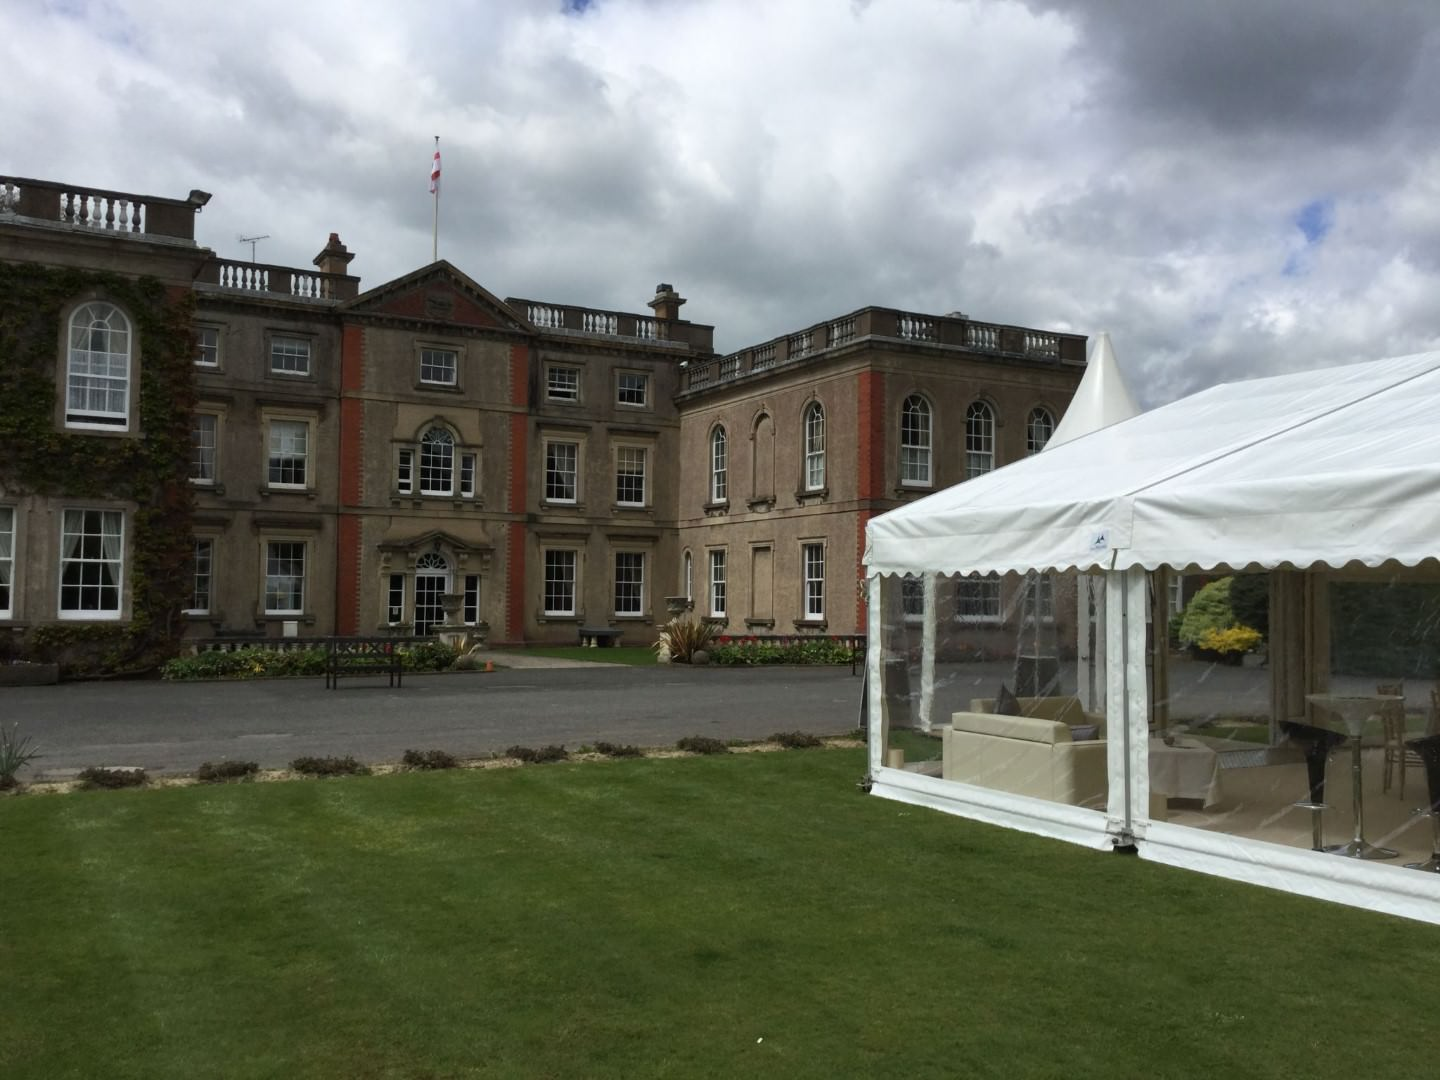 Marquee Hire Good Intents at The Elms Abberley